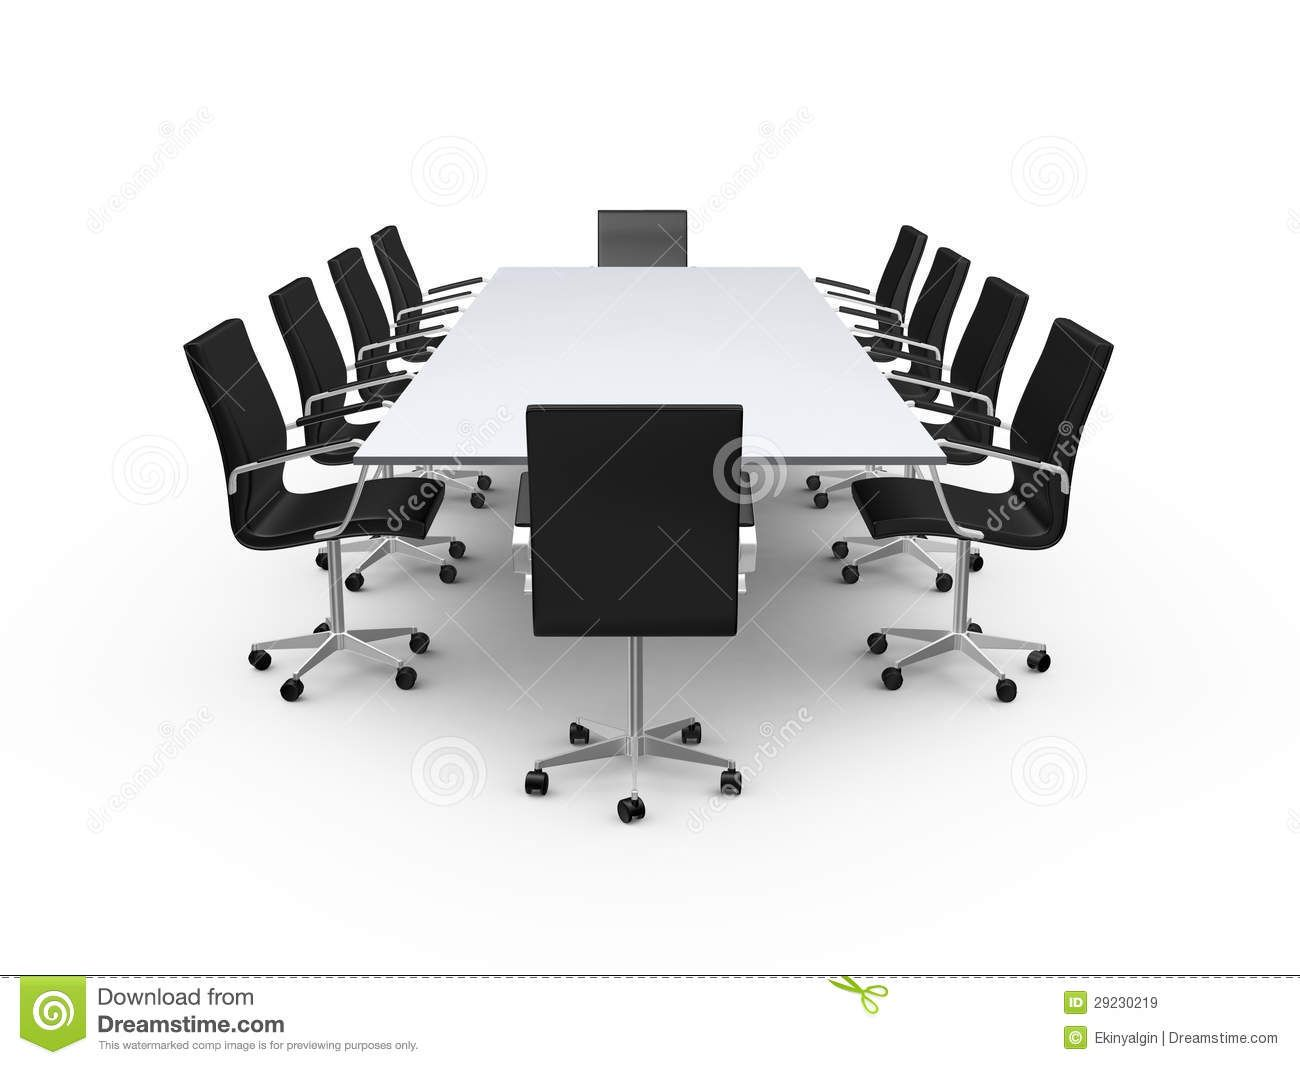 Conference Table Office Chairs 29230219 Jpg 1300 1065 Chair Price Desk And Chair Set Table And Chairs